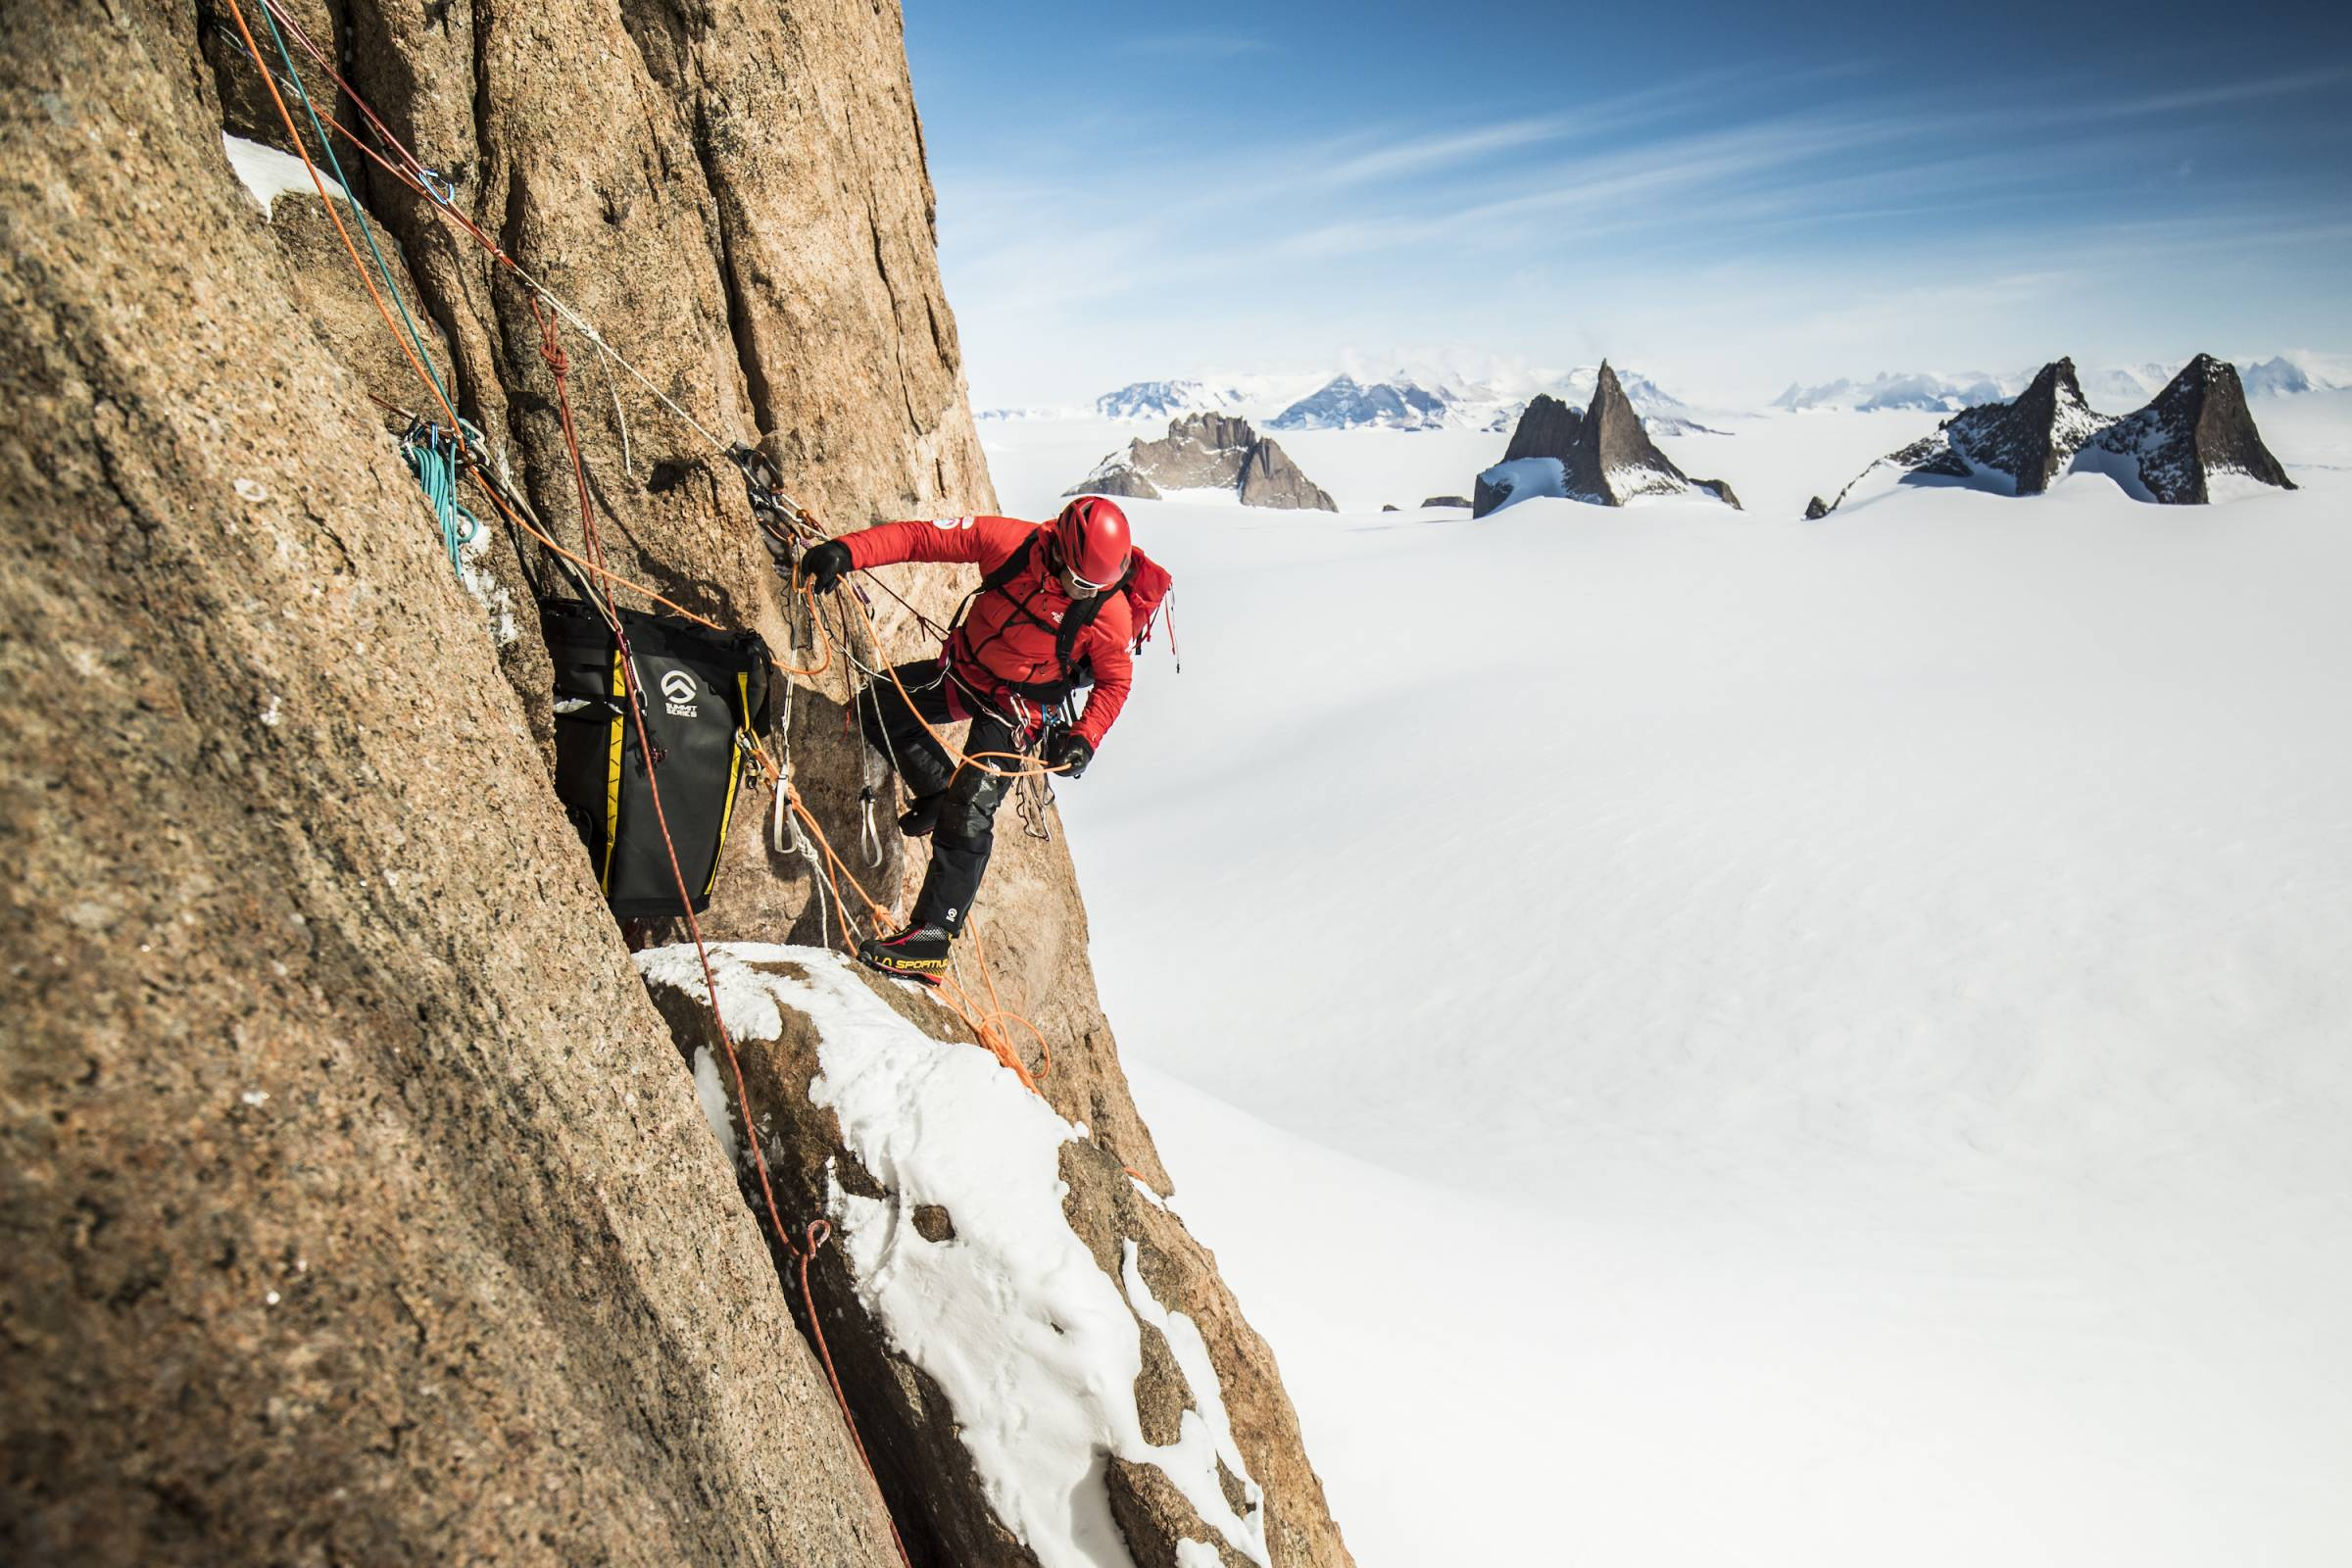 Cedar Wright in red puffy jacket climbing up face of peak in Antarctica